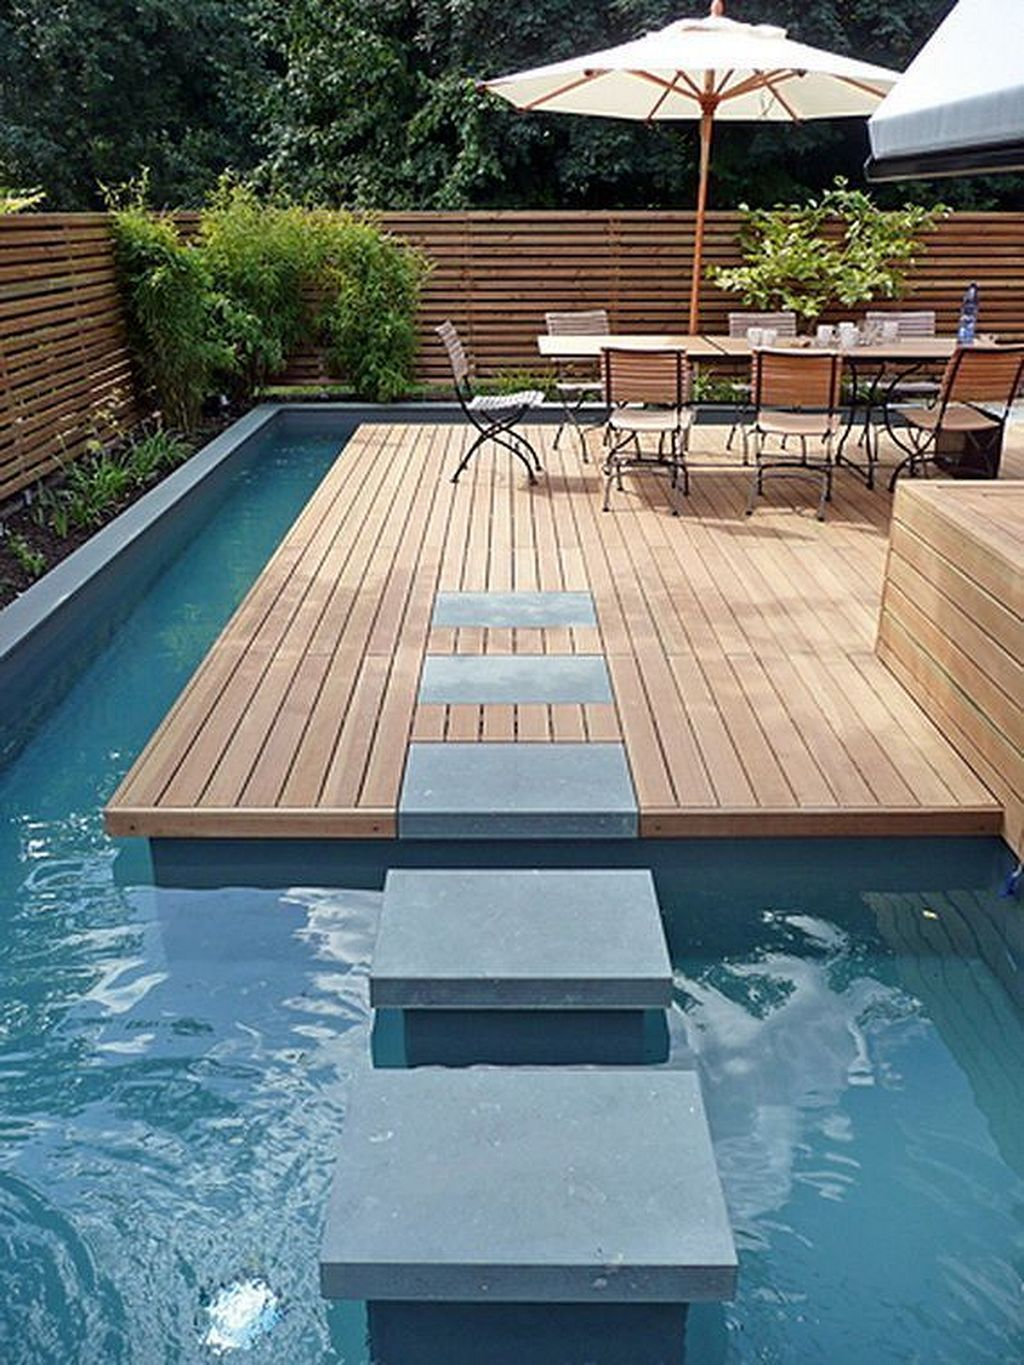 So We Provide Some Swimming Pool Design Ideas For You Discover The Very Best Pool Ideas As W Pool Landscape Design Swimming Pool Designs Small Backyard Design